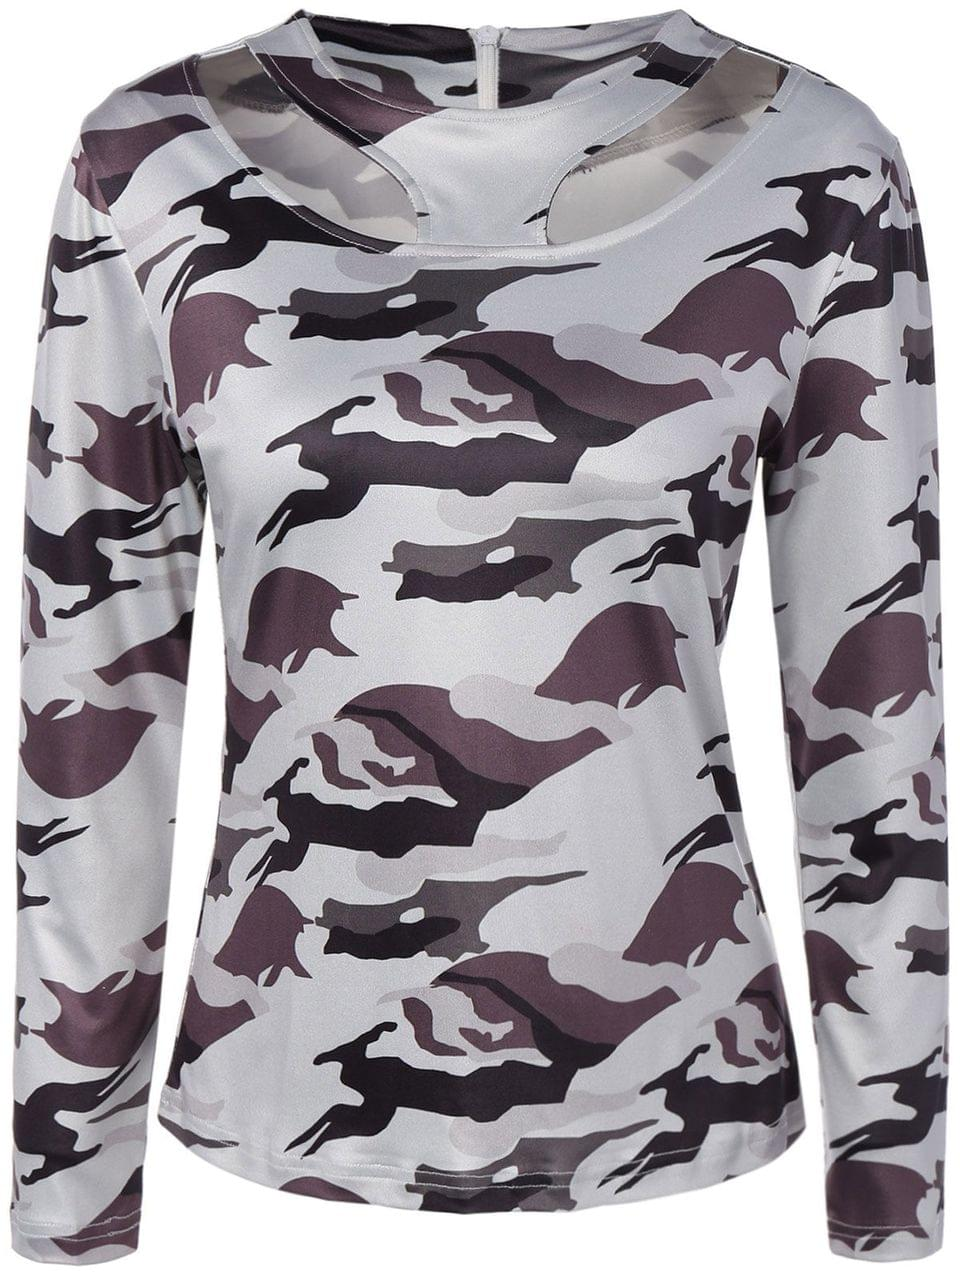 Women's Cut Out Camouflage T-Shirt - White Xl